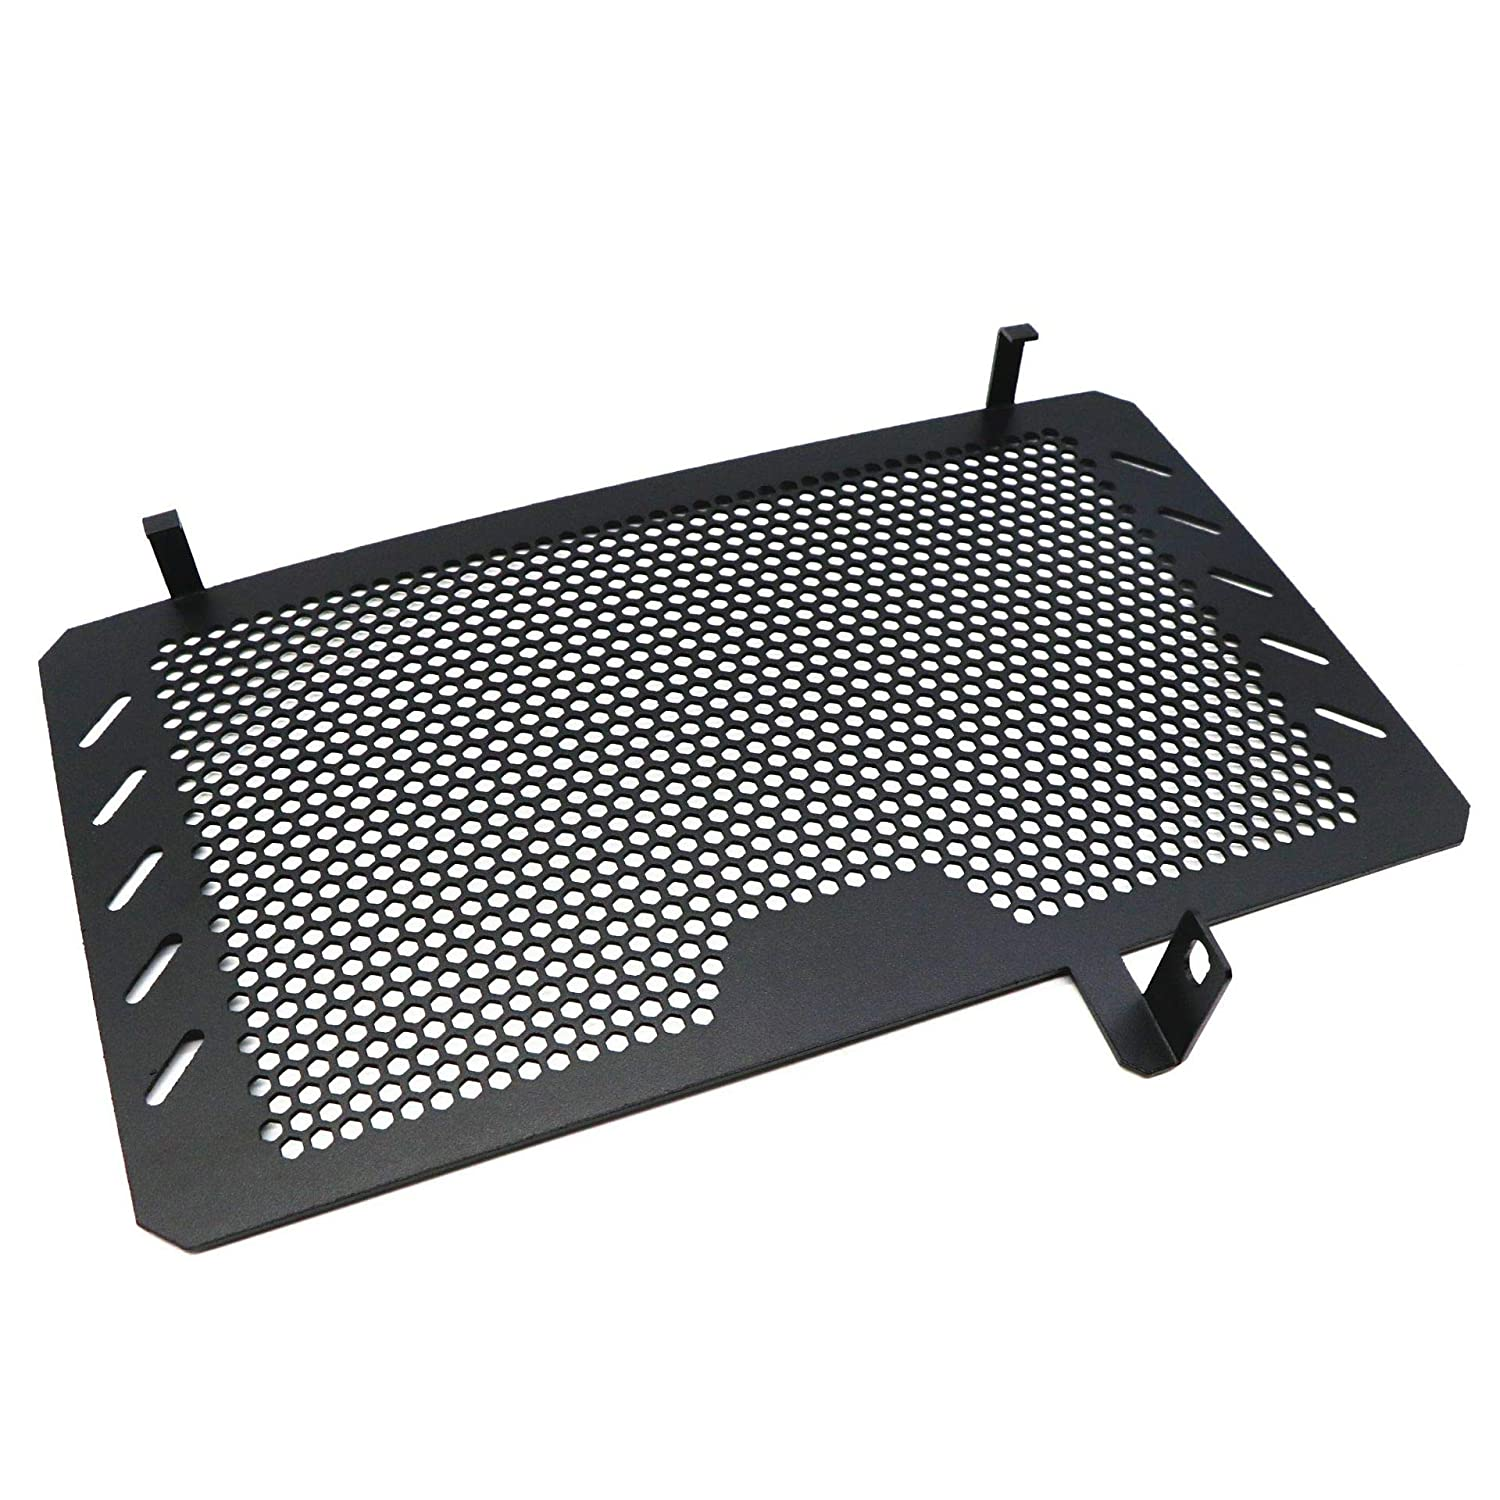 MeterMall Radiator Grille Guard Water Cooler Protector For SUZUKI DL650 V-STROM 13-18